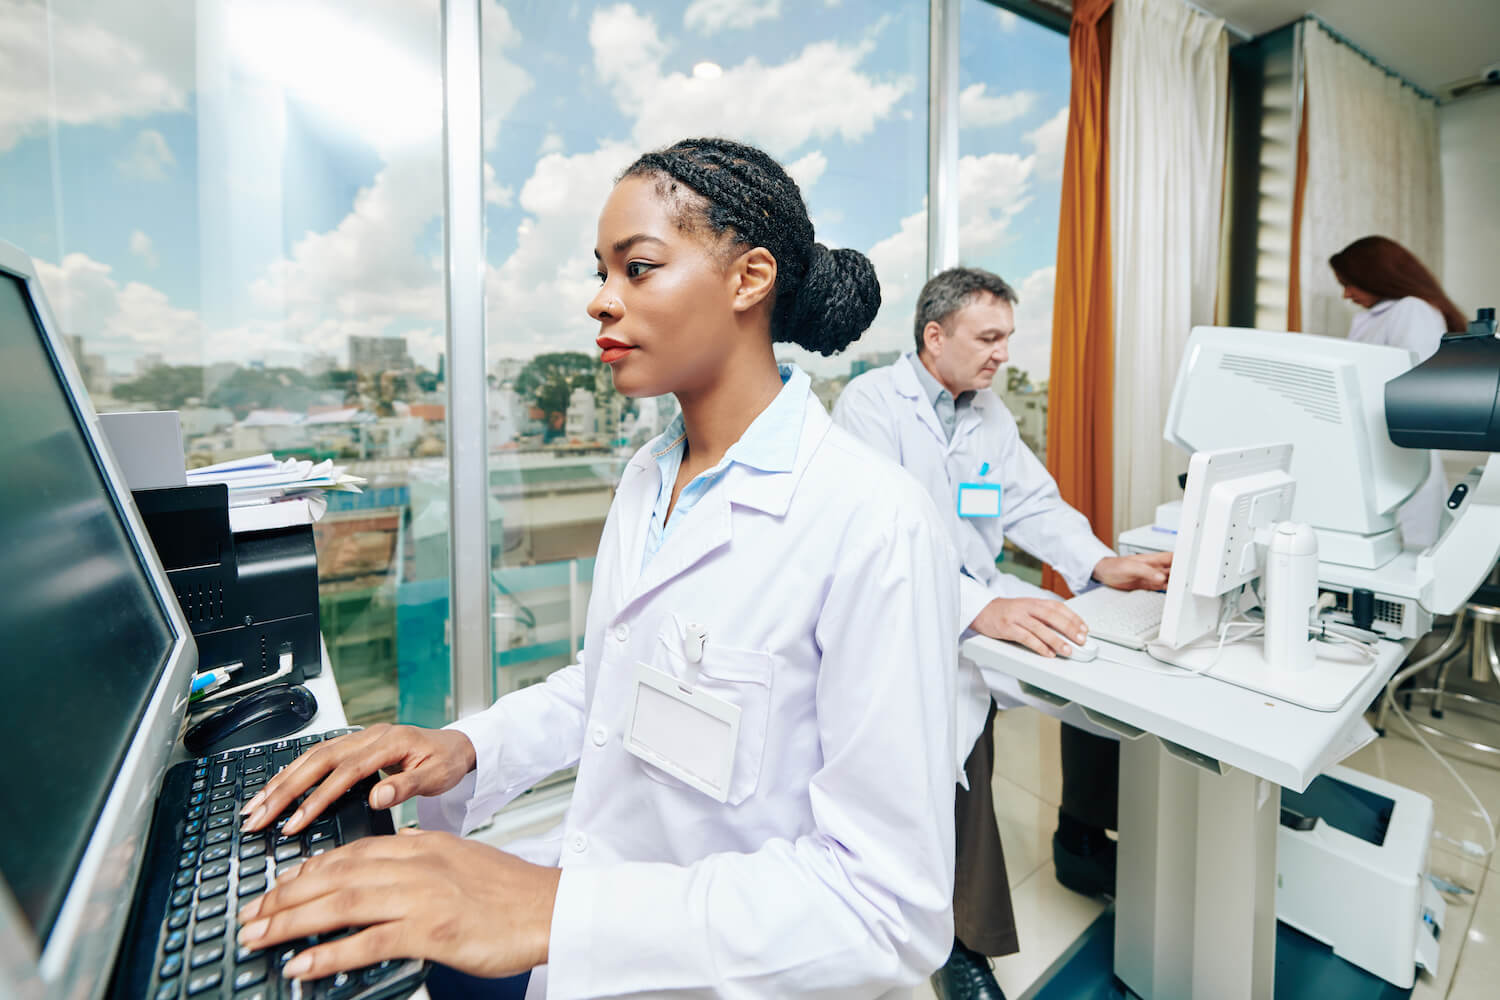 A women doctor typing on a computer with other staff in the background.